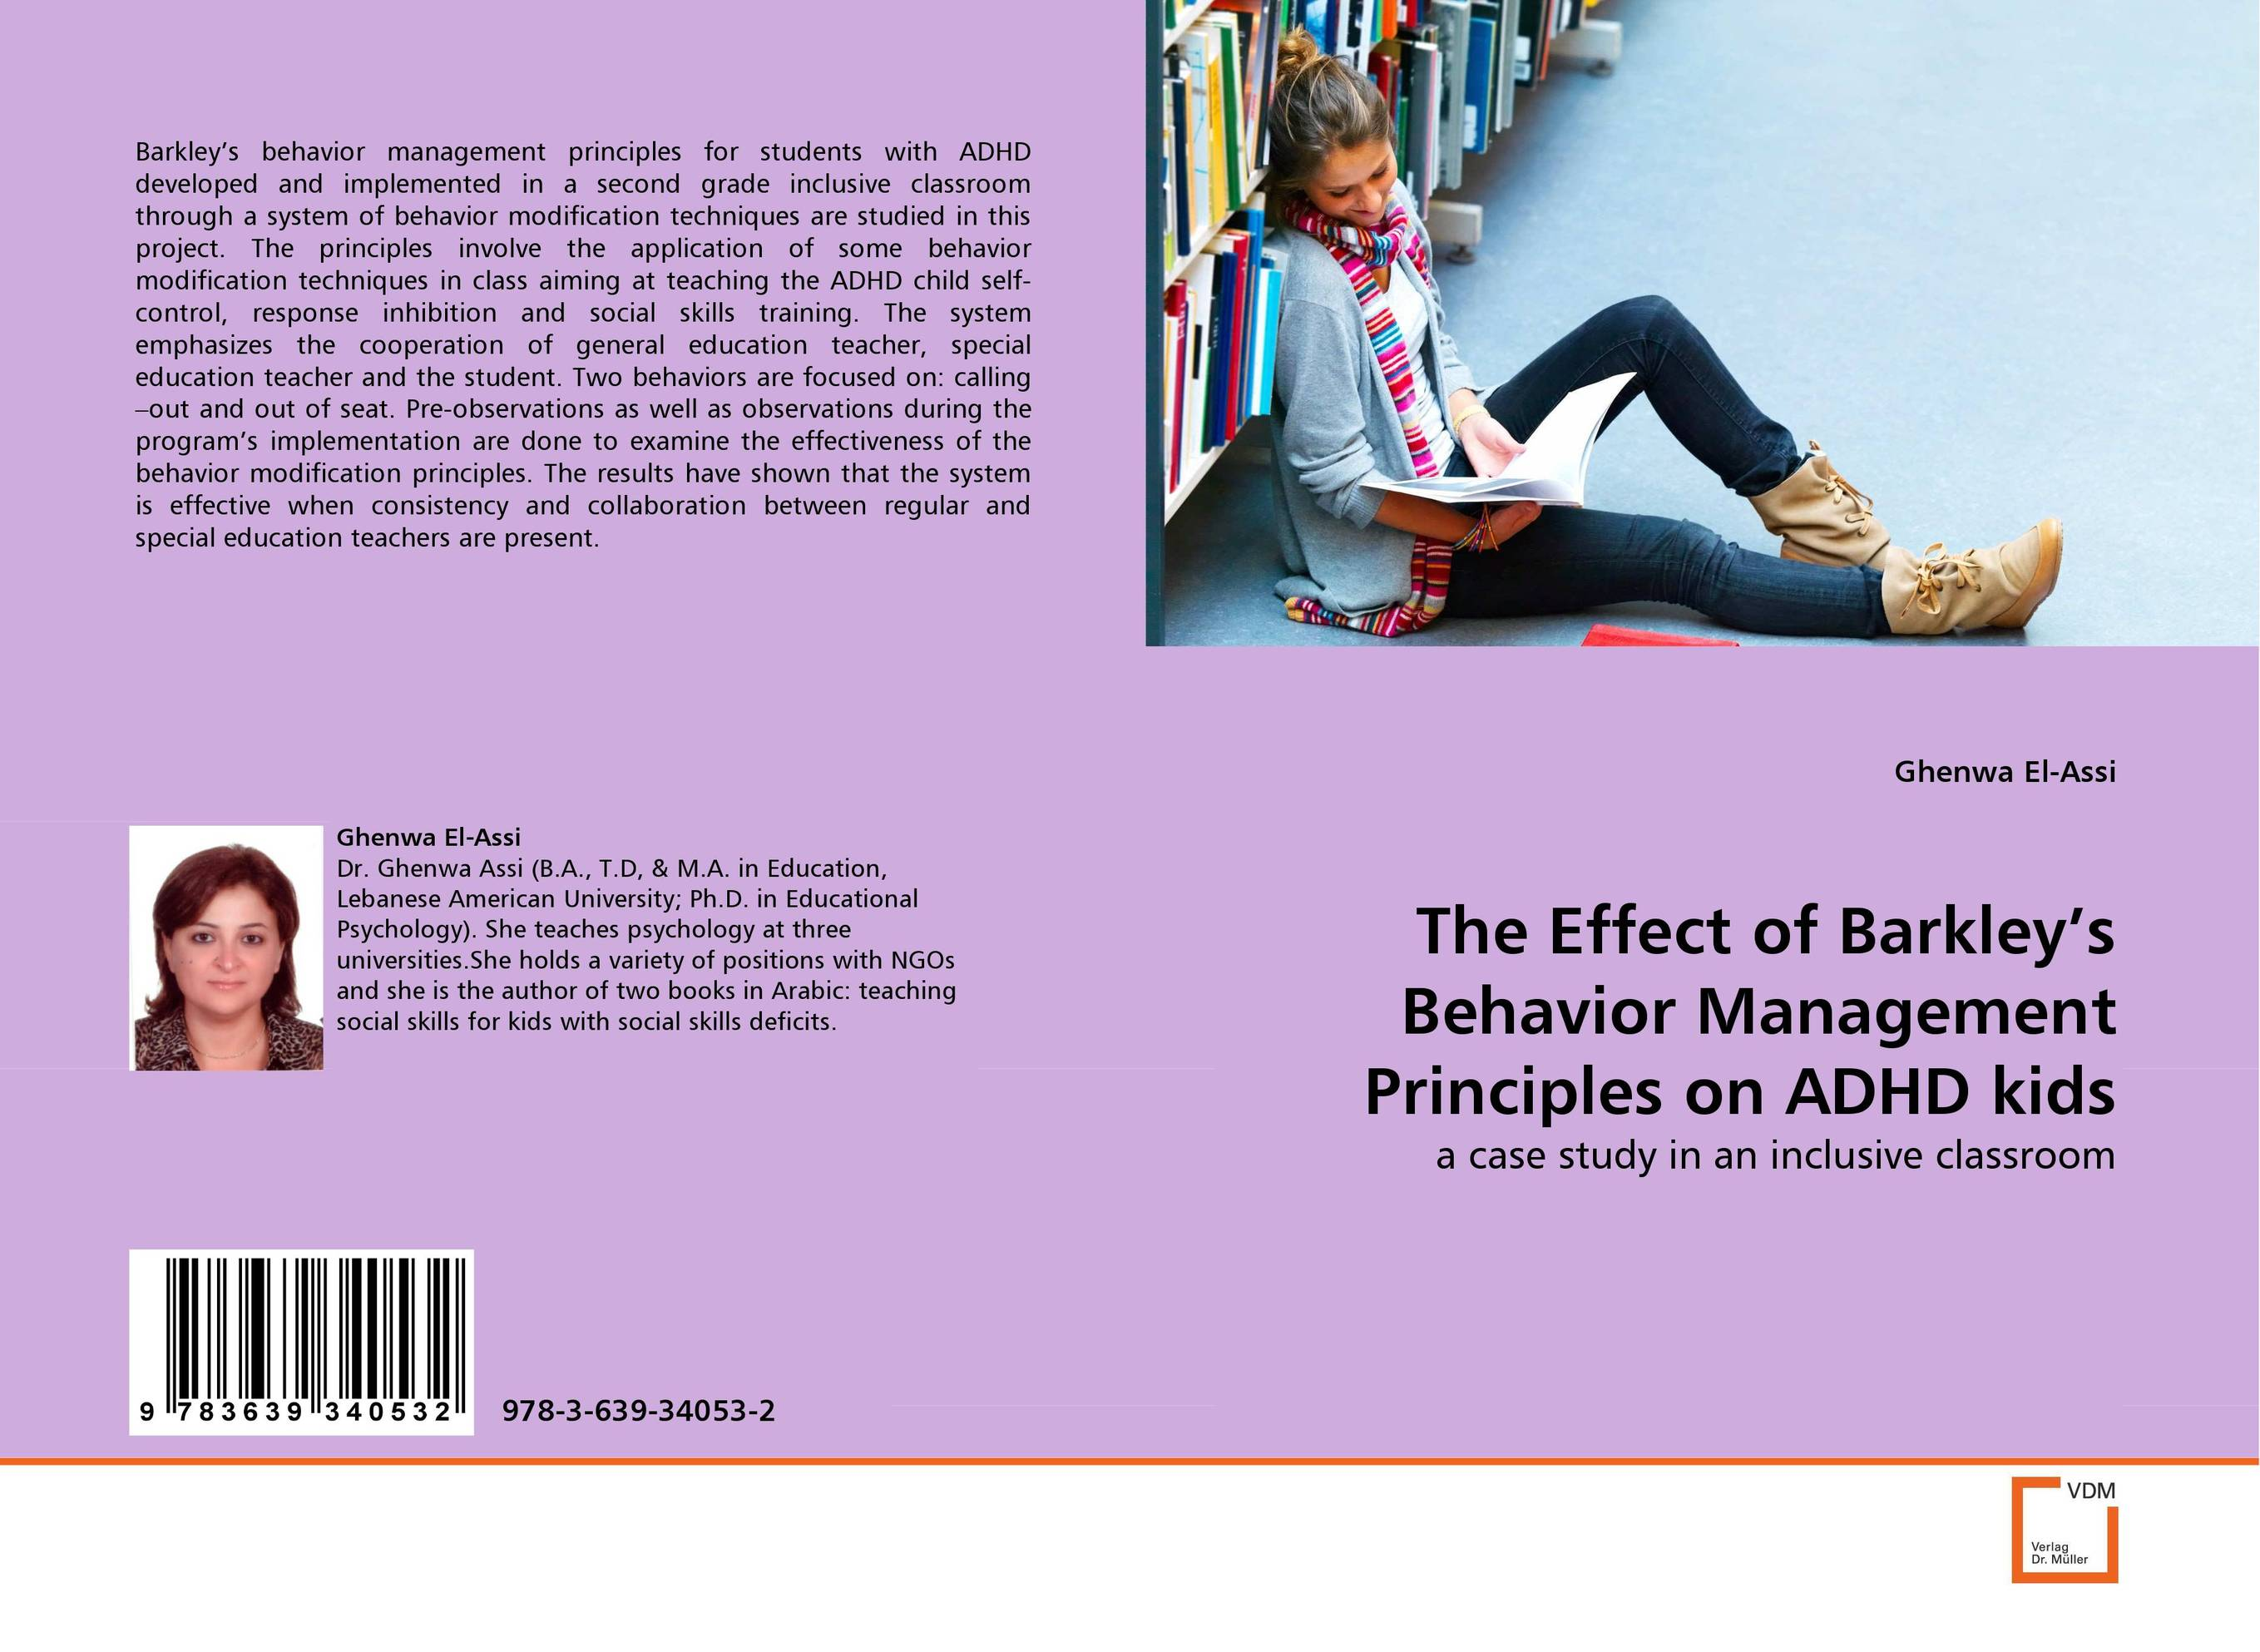 The Effect of Barkley''s Behavior Management Principles on ADHD kids